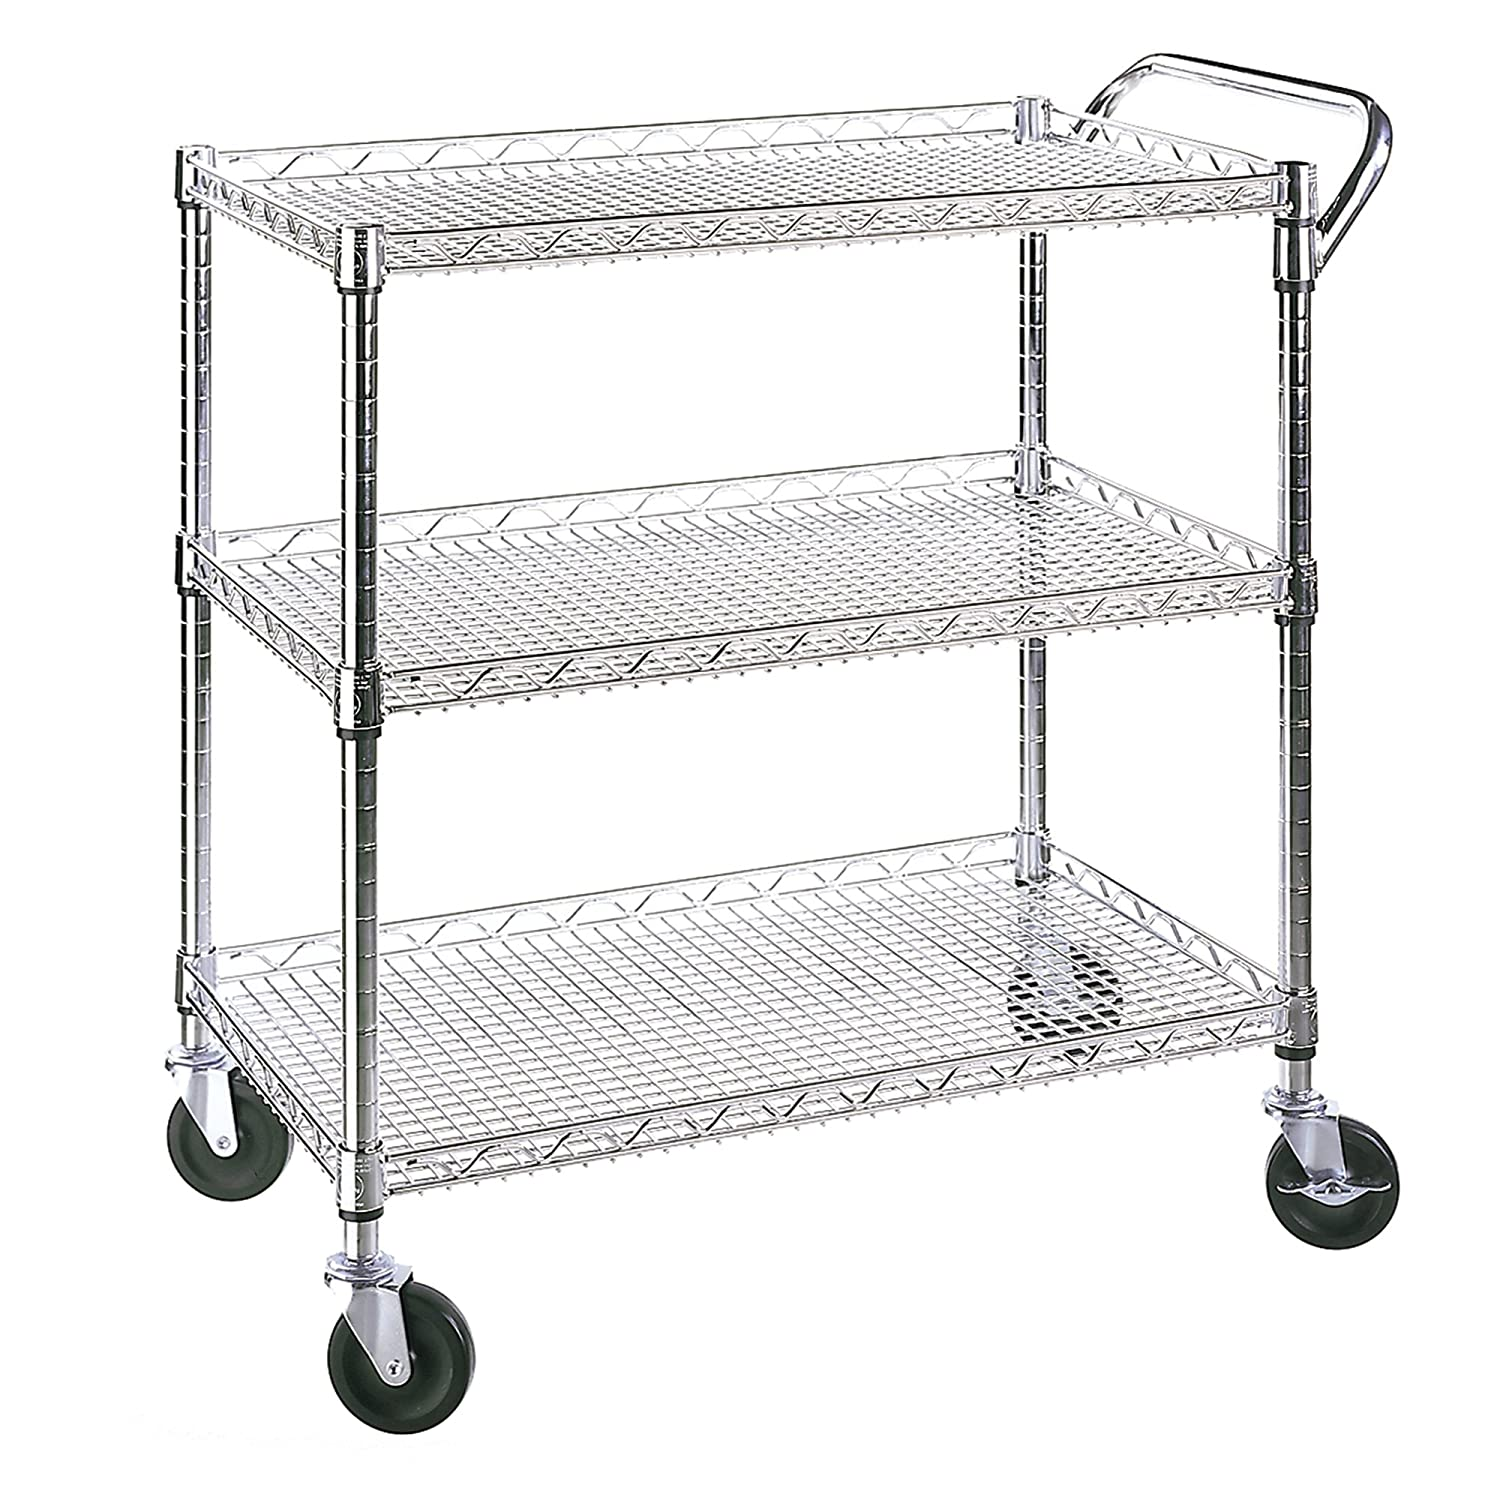 Seville Classics All-Purpose Utility Cart Black Friday Deal 2020